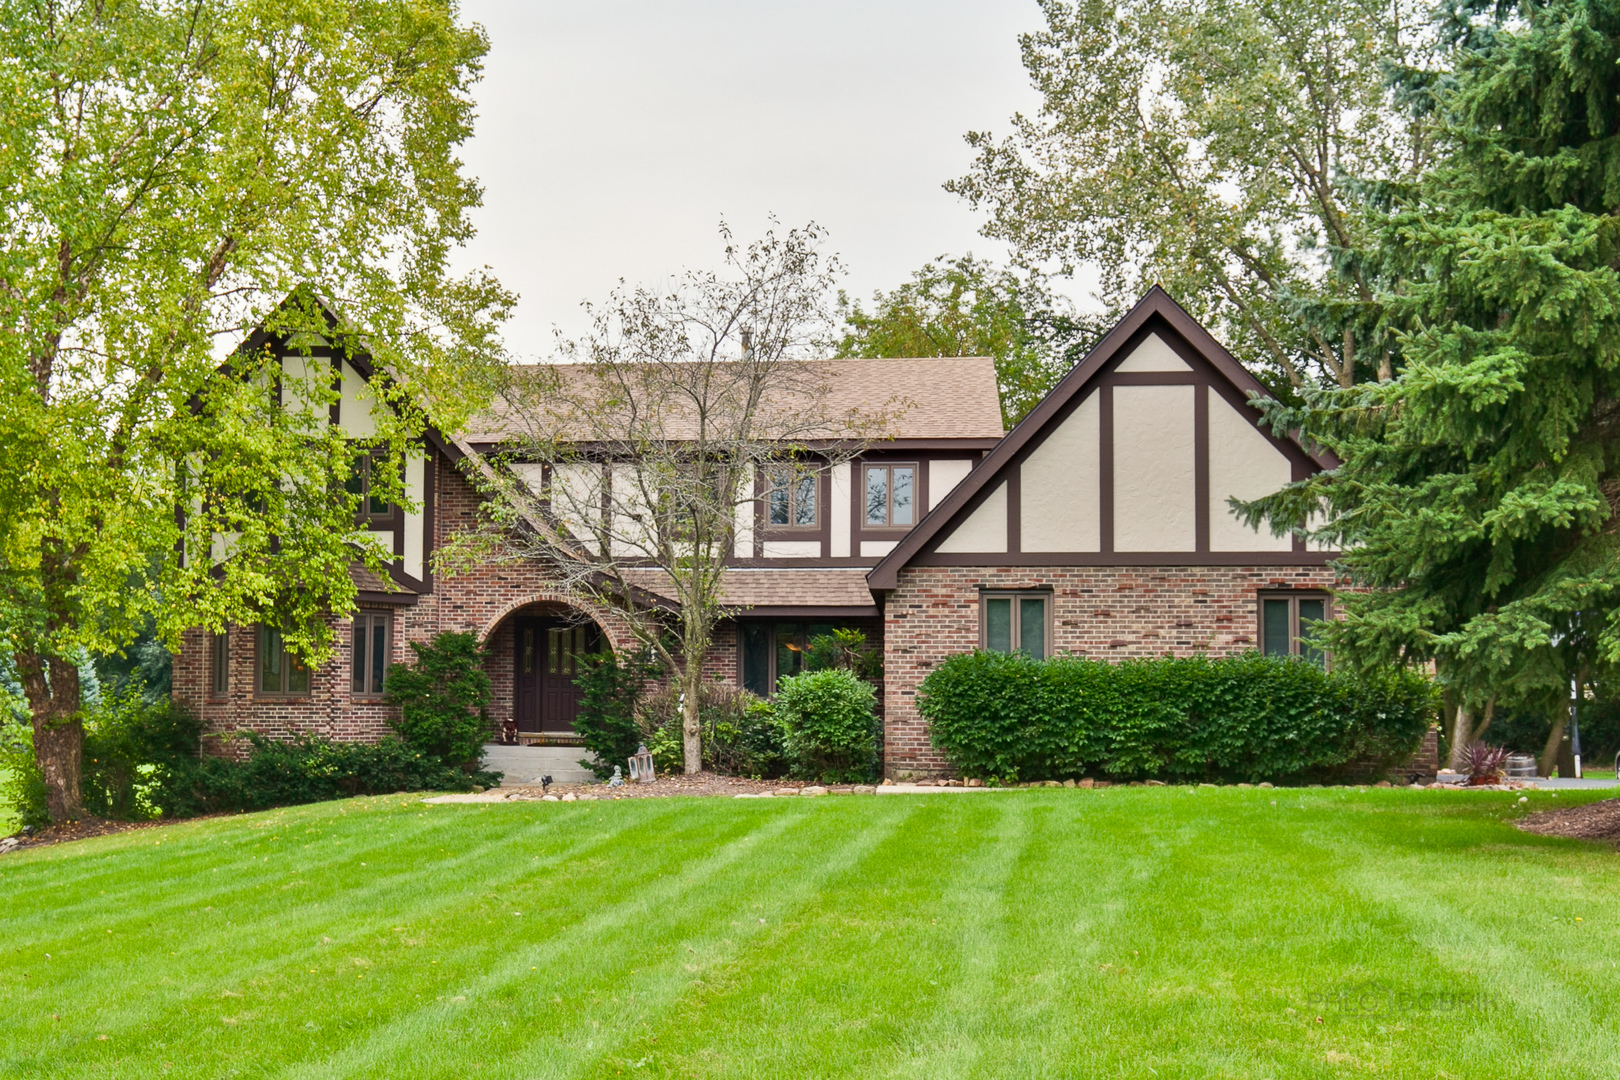 The perfect mix of fresh design & tradition! So much to enjoy inside & out with tons of fresh updates including a new roof! Impressive Tudor facade welcomes you w/ sloped roof & arched entry detail into the foyer, flanked by the separate dining room & living room w/ bay window seat & built-in desk area. Inviting family room w/ floor-to-ceiling stone gas fireplace. Updated eat-in kitchen w/ tumbled marble backsplash, built-in fridge, stainless steel appliances, island & gleaming granite counters. Upstairs, the luxurious master suite has a huge walk-in closet & an updated ensuite bath w/ dual quartz vanity, whirlpool tub & separate custom tile shower. Three more spacious bedrooms share a full bath w/ dual quartz vanity & tile shower/tub combo. Relax & entertain in the finished basement w/ rec room ft. fireplace & oak bar, media room & exercise room. Full basement bath w/ separate shower. Enjoy 1.8 acres of rolling lawn, huge deck & your own in-ground pool w/ slide! Renowned District 125!